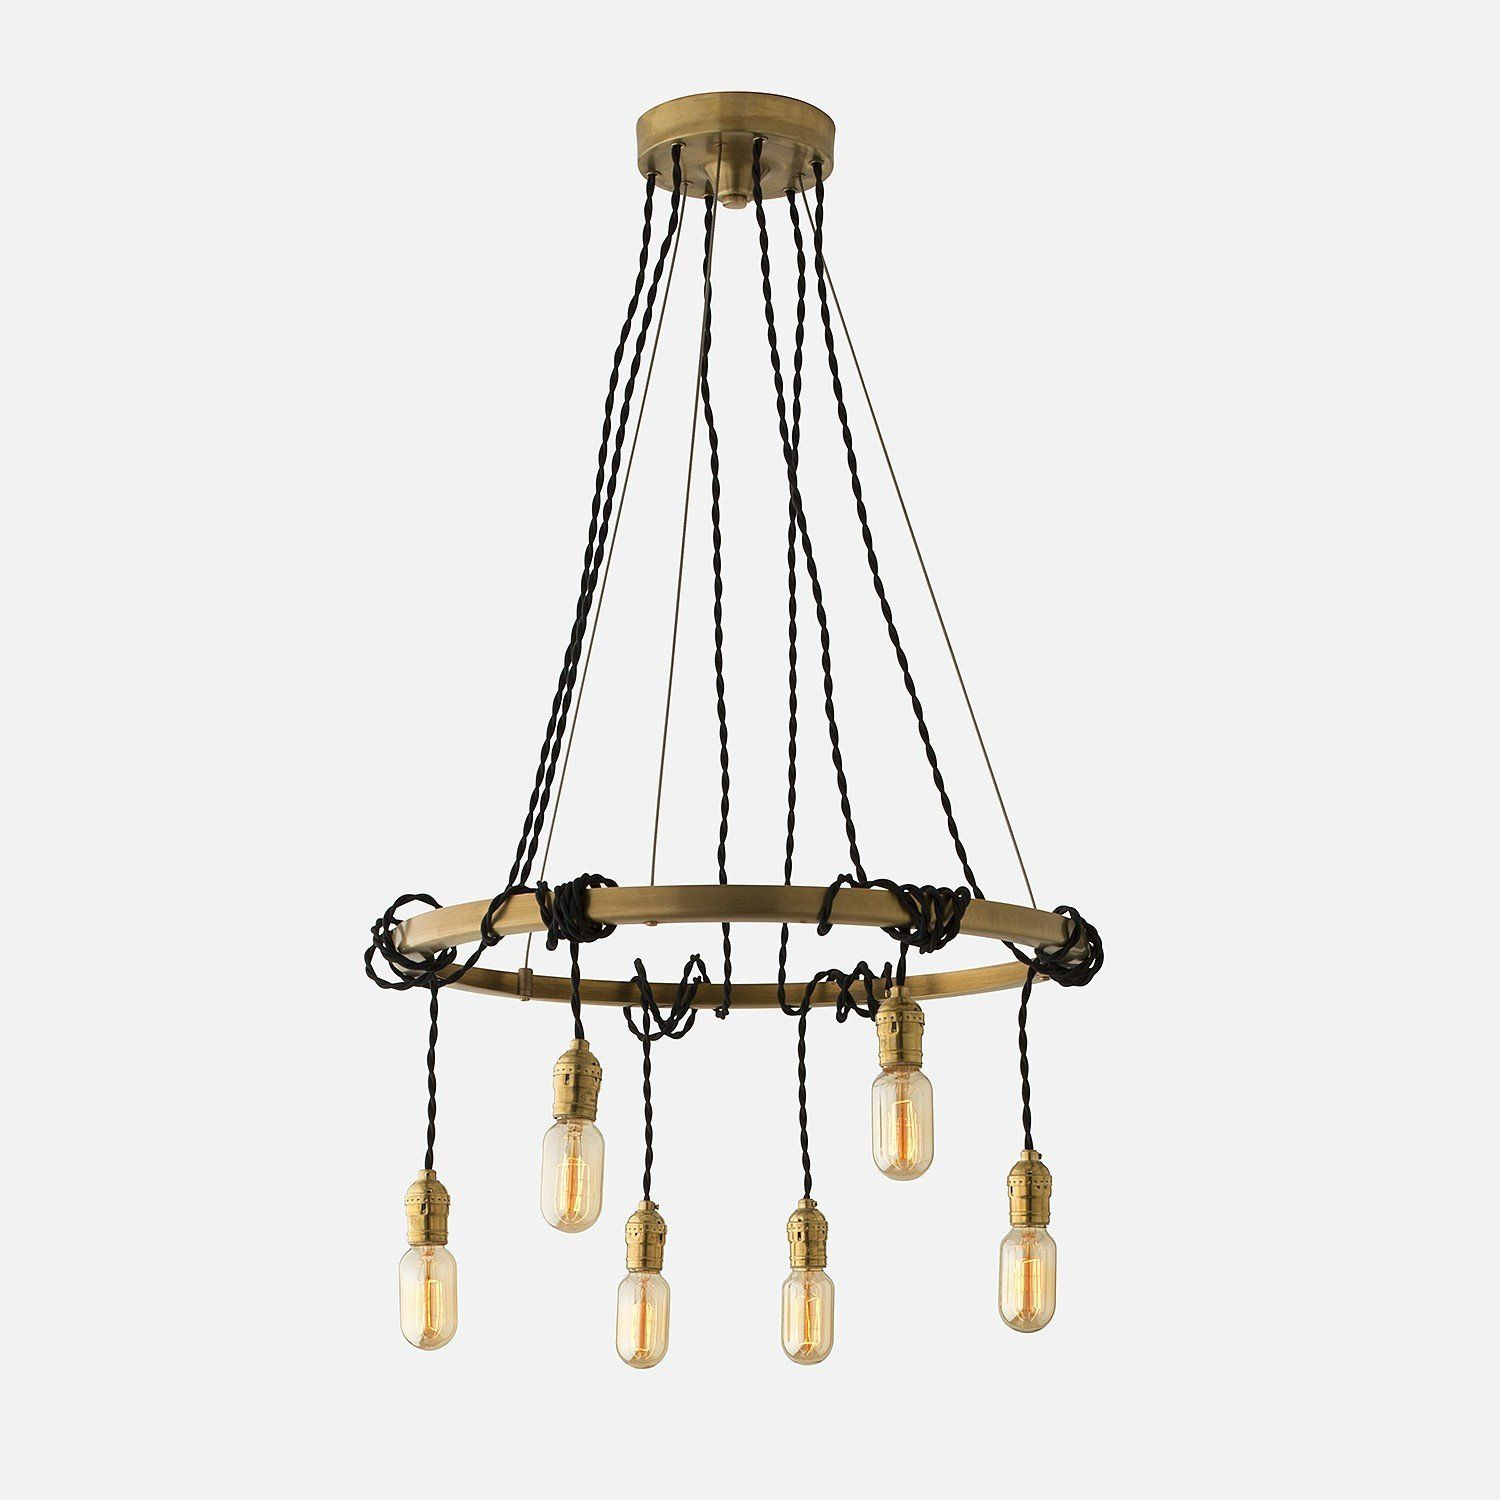 Launceton Ring Chandelier: Tangled Chandelier - Natural Brass